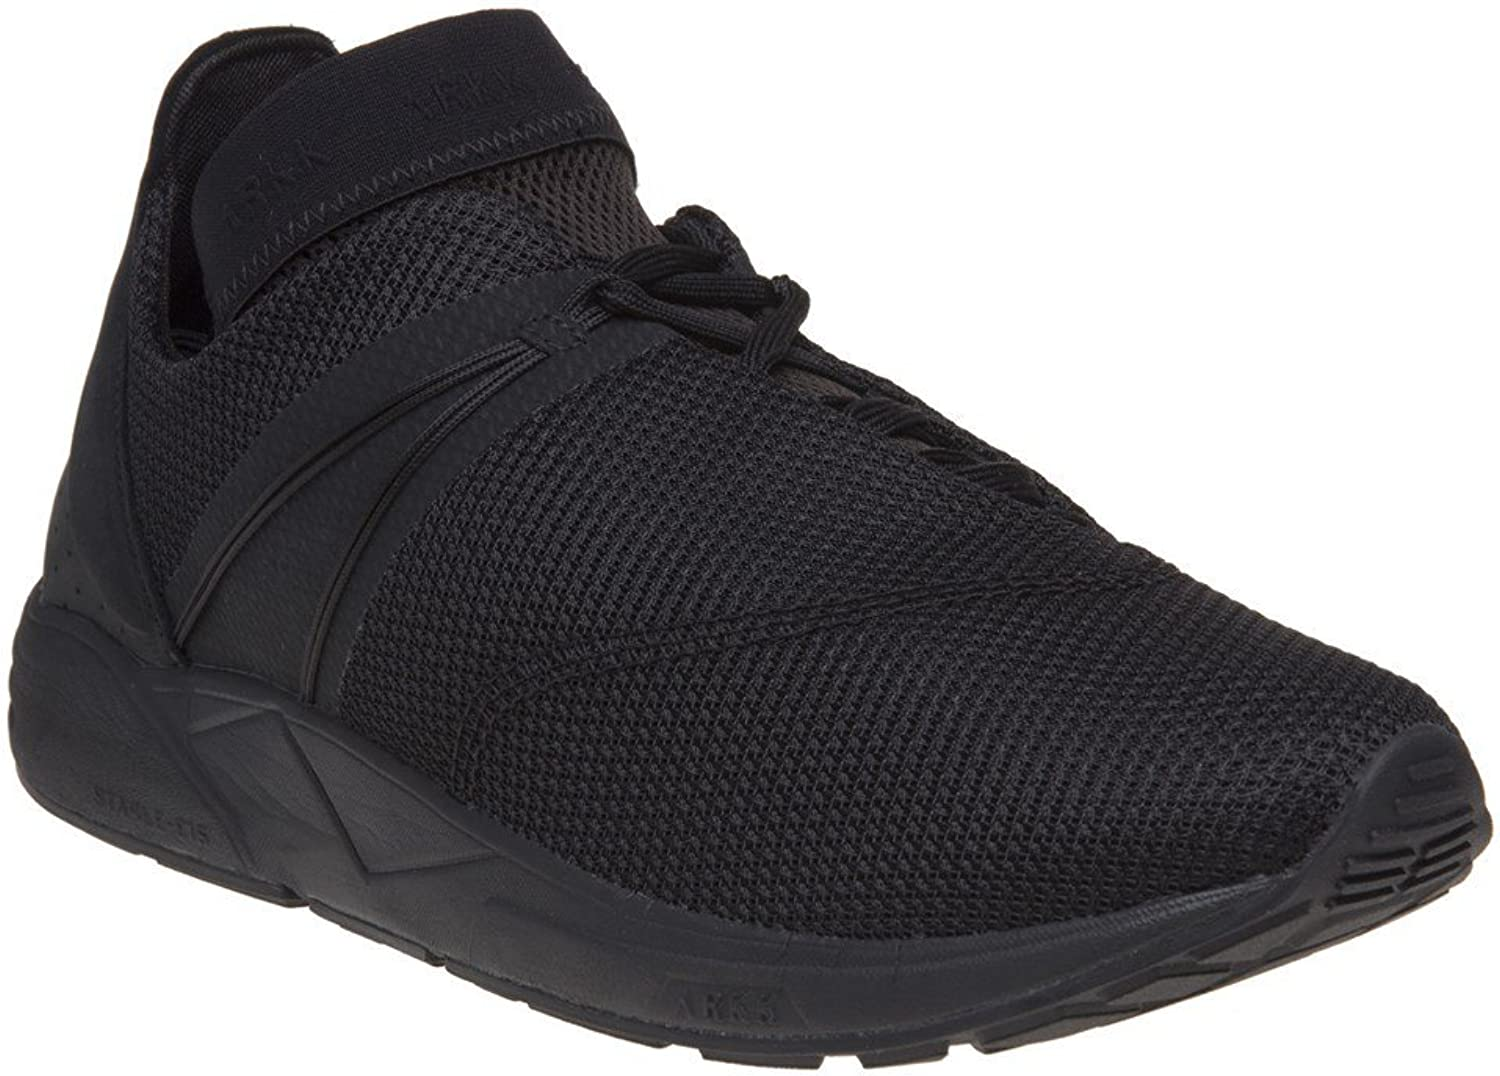 ARKK Copenhagen Eaglezero Trainers Black